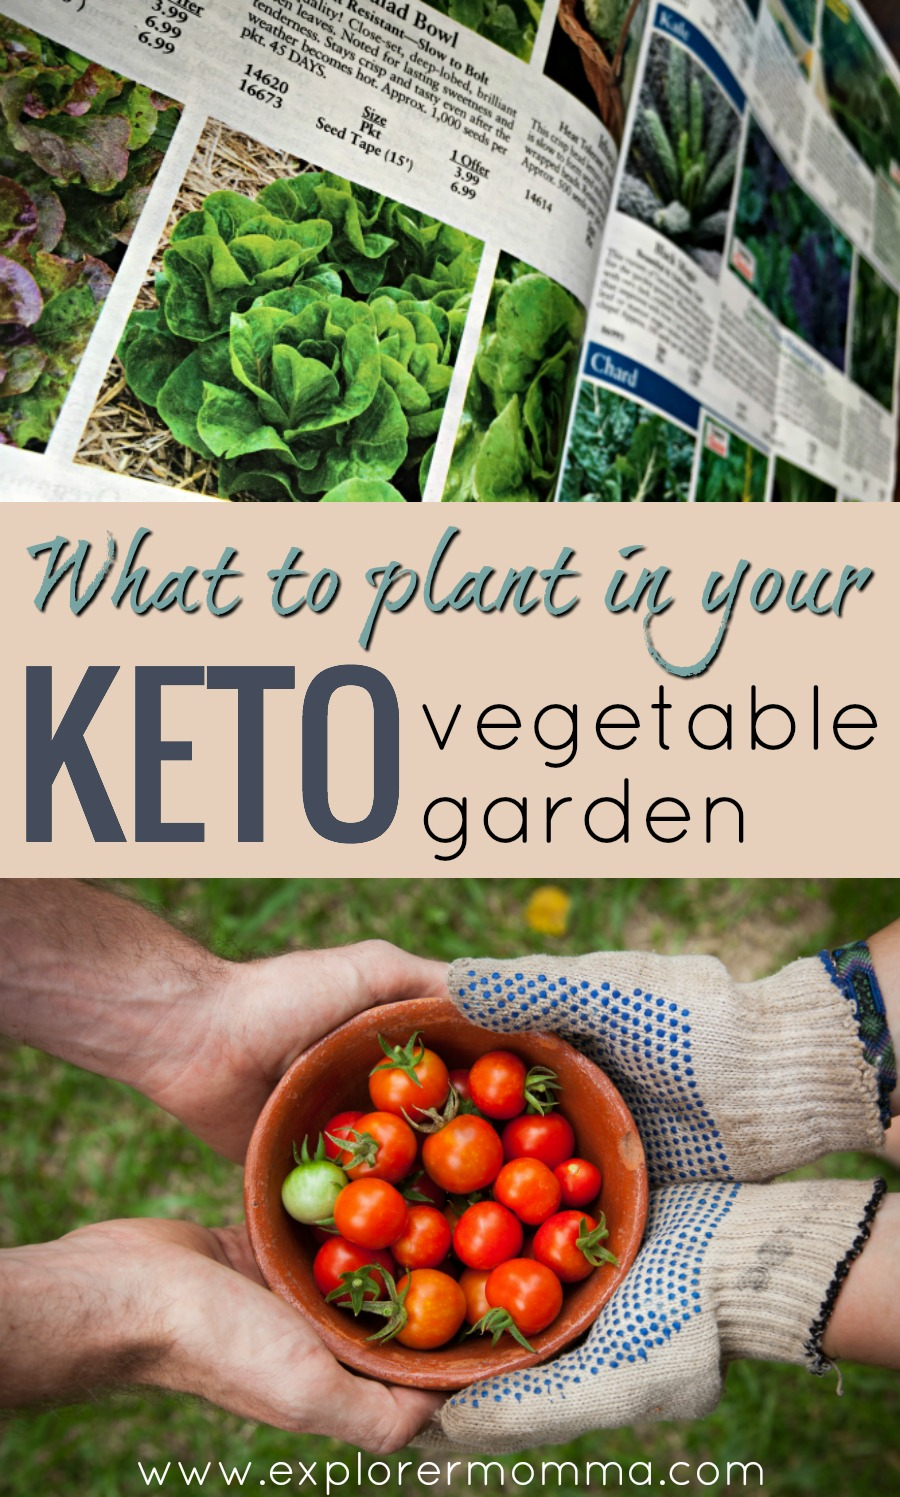 Amazing What To Plant In Your Keto Vegetable Garden